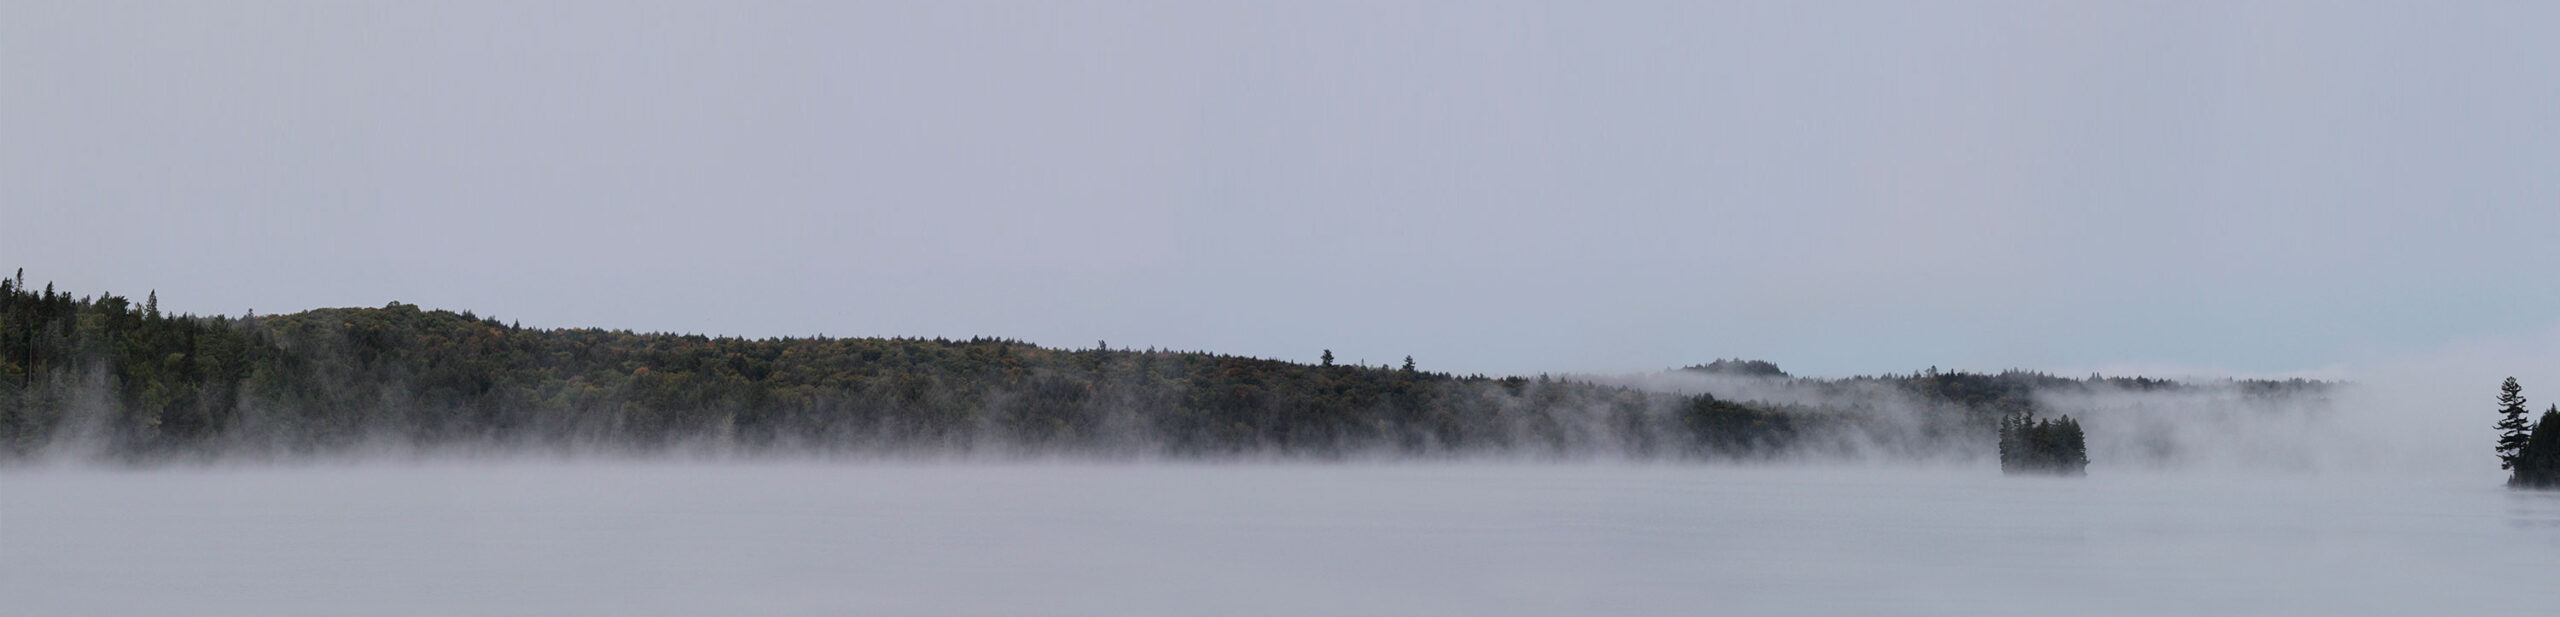 Panorama of Big Trout Lake during a very cold and misty morning in September